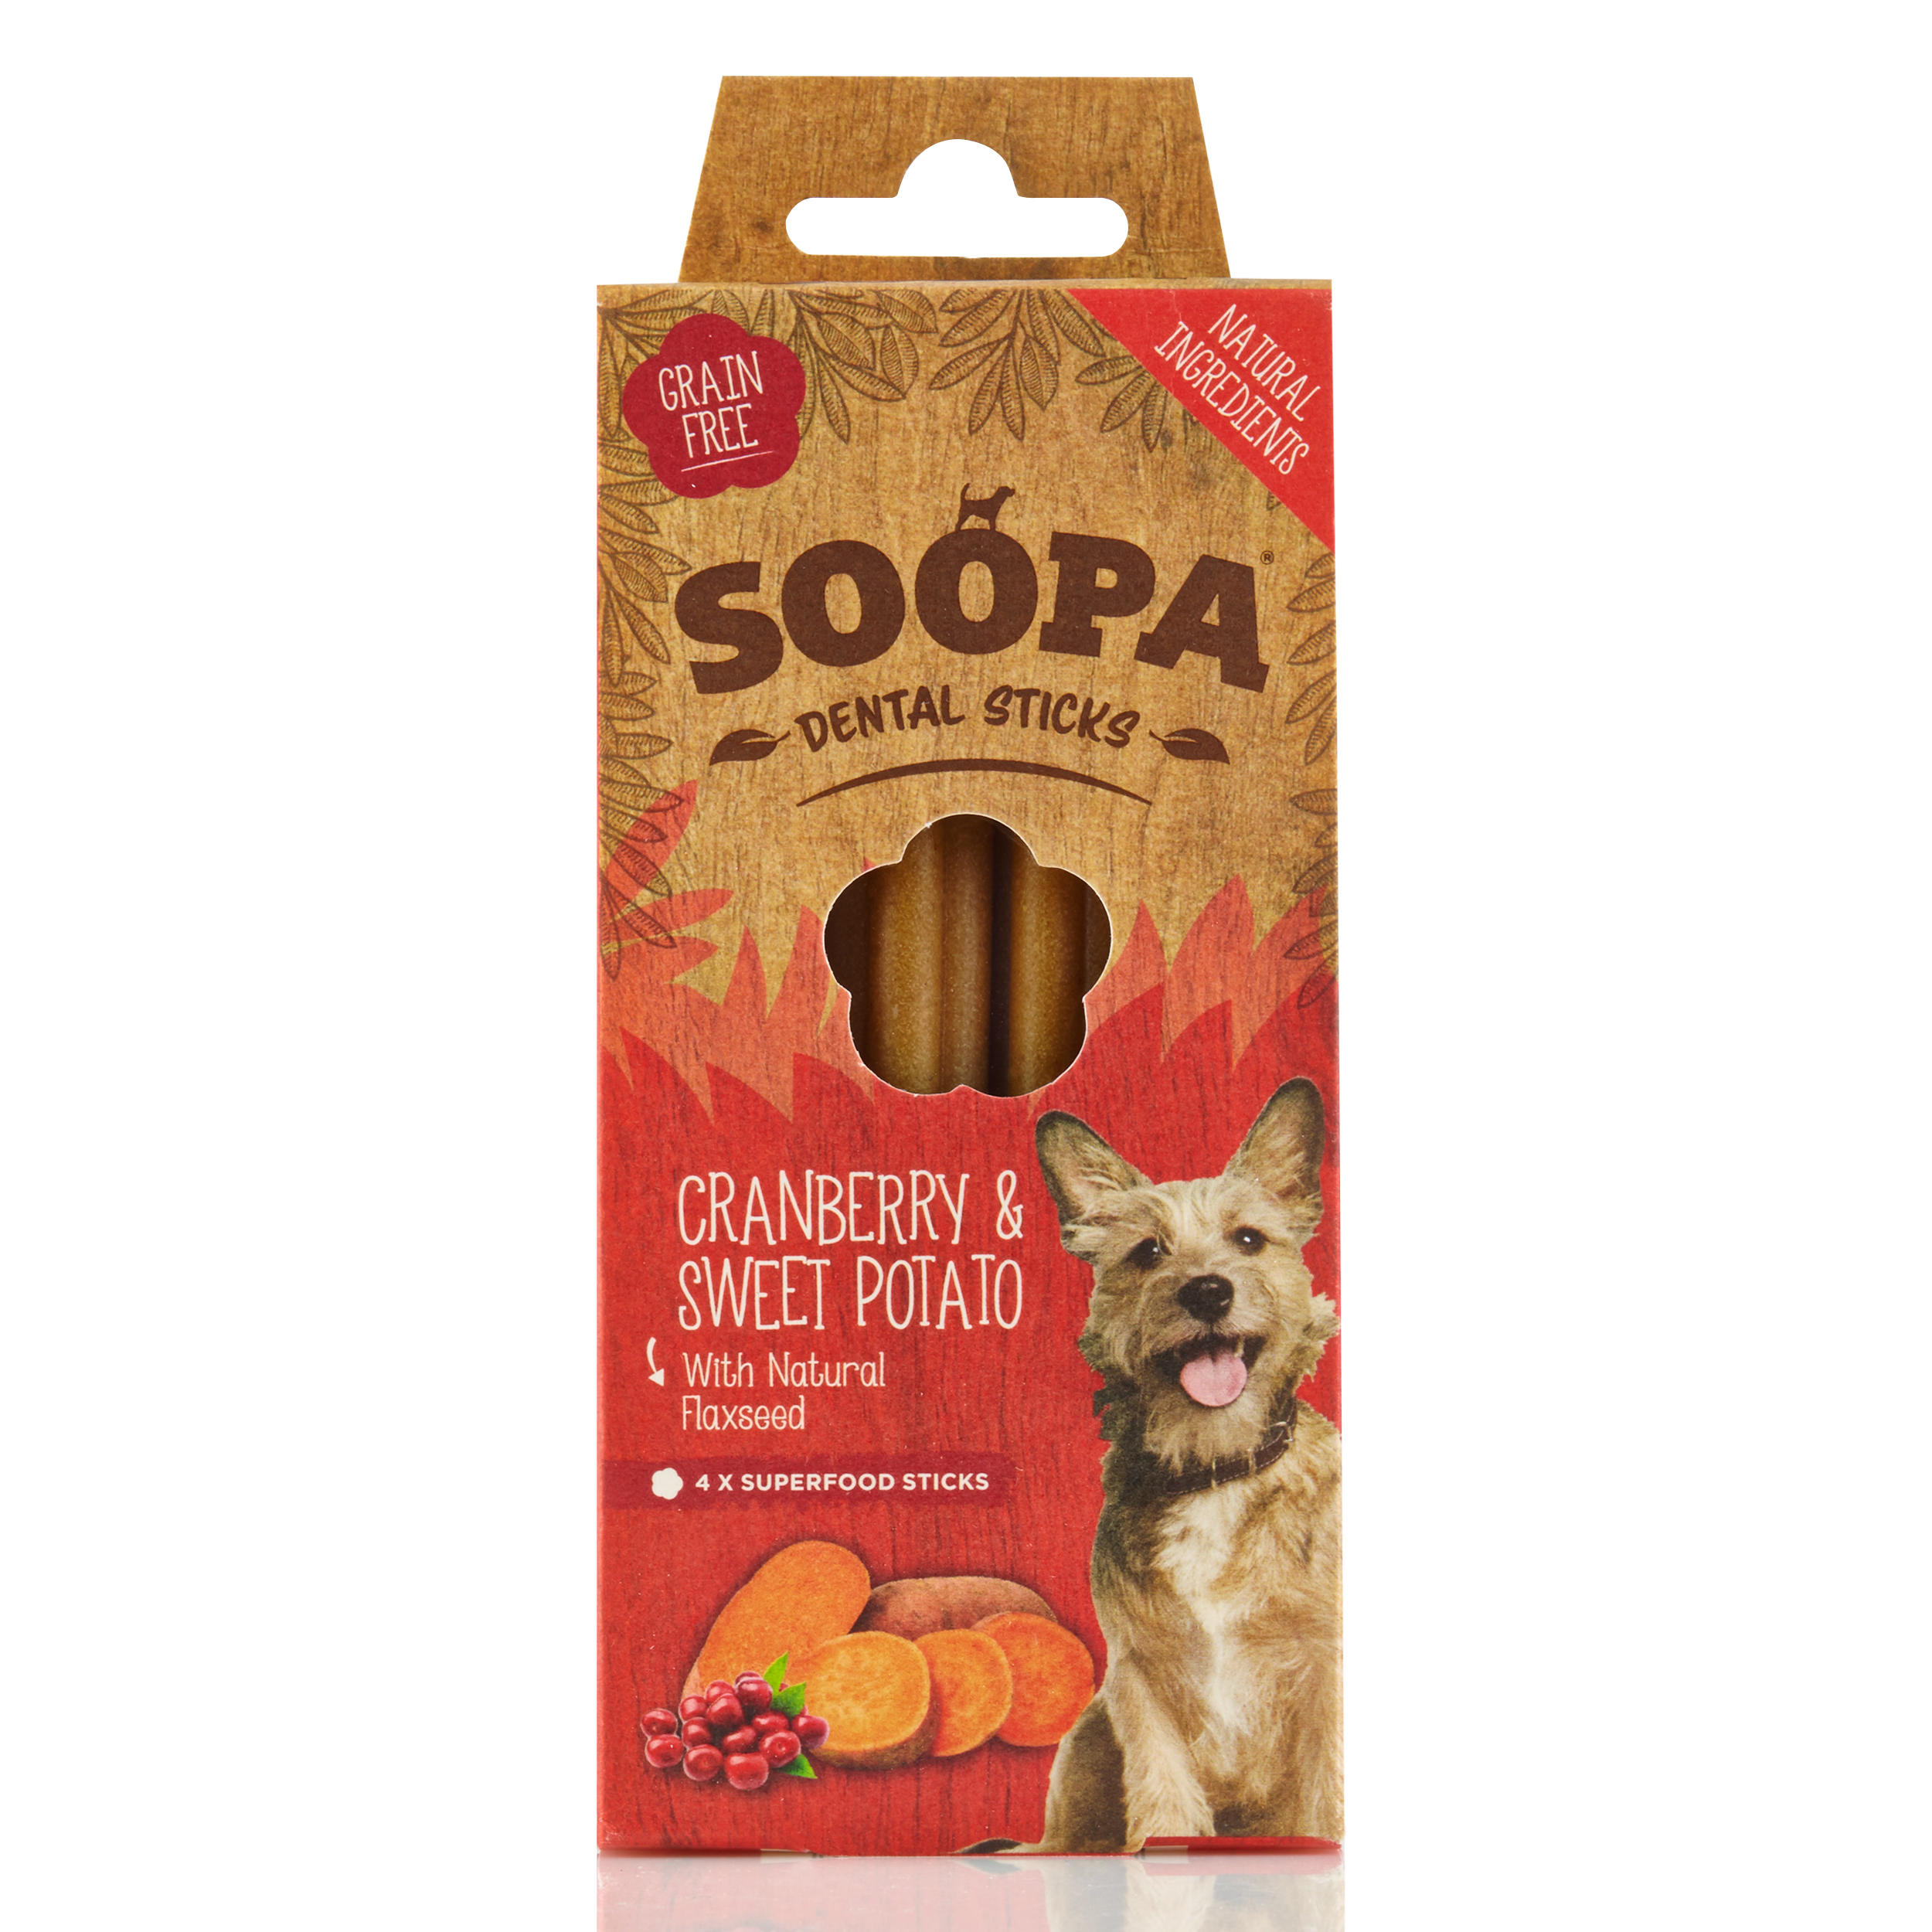 Soopa Cranberry and Sweet Potatot Dental Stick